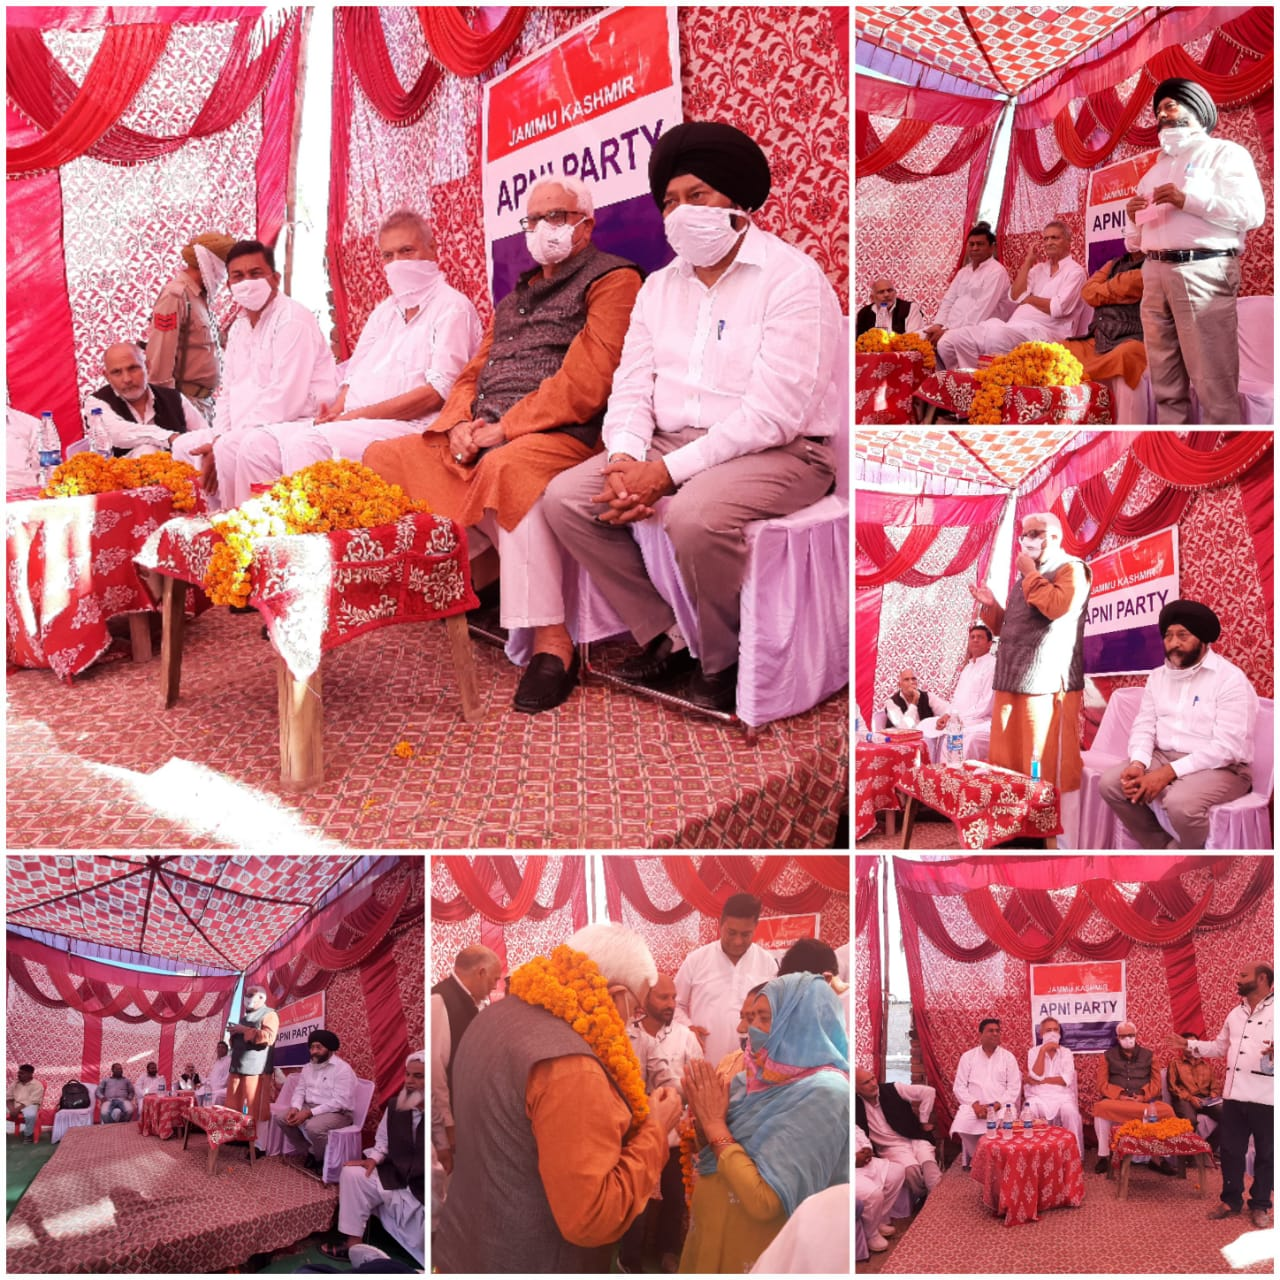 Apni Party continues to hold public contact programmes across Jammu